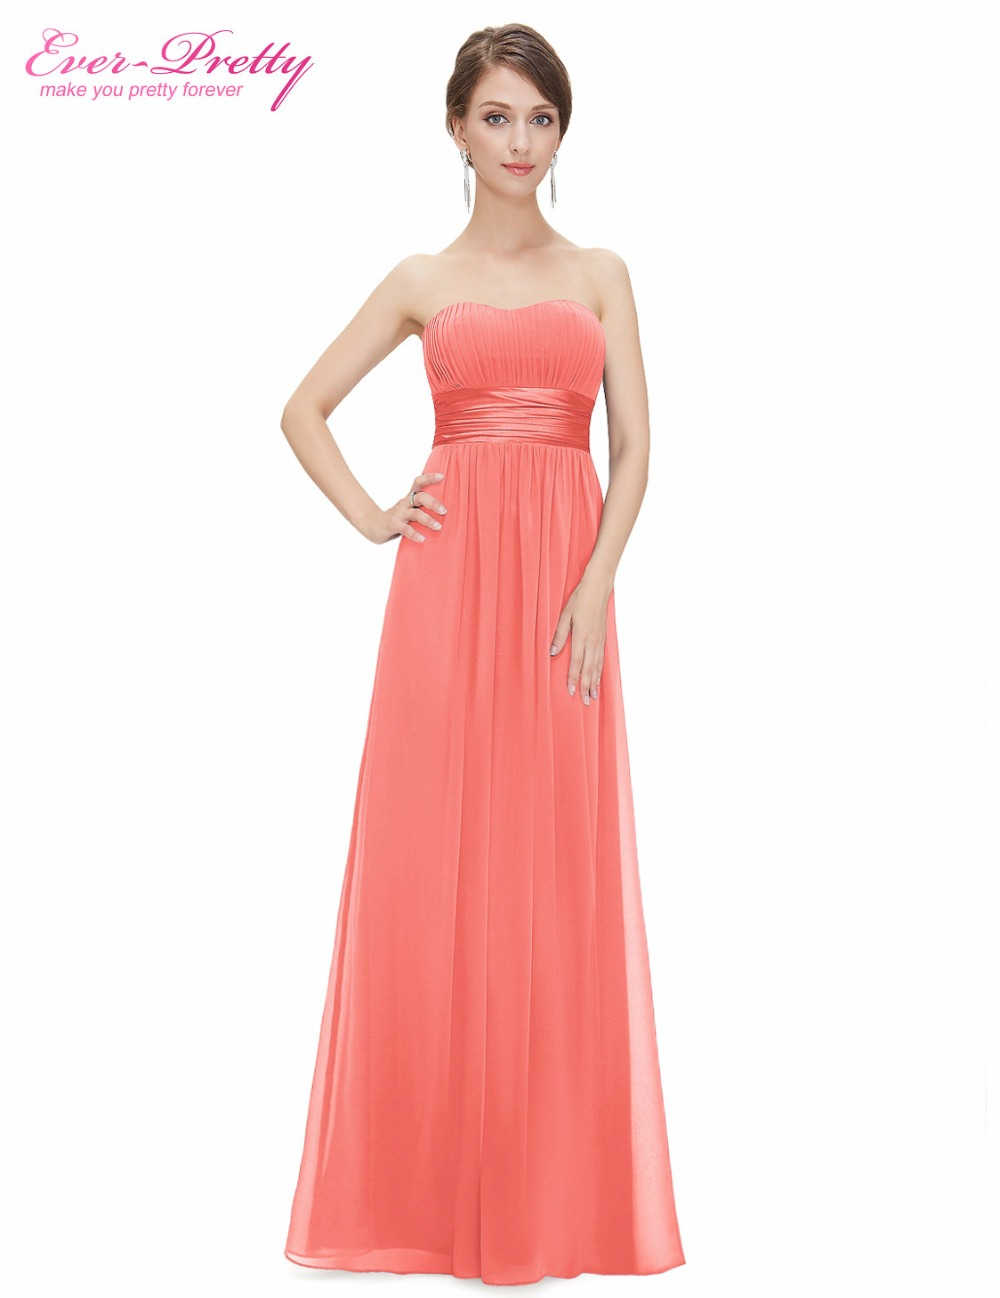 Online buy wholesale sexy bridesmaid dresses from china for Wedding dresses wholesale china